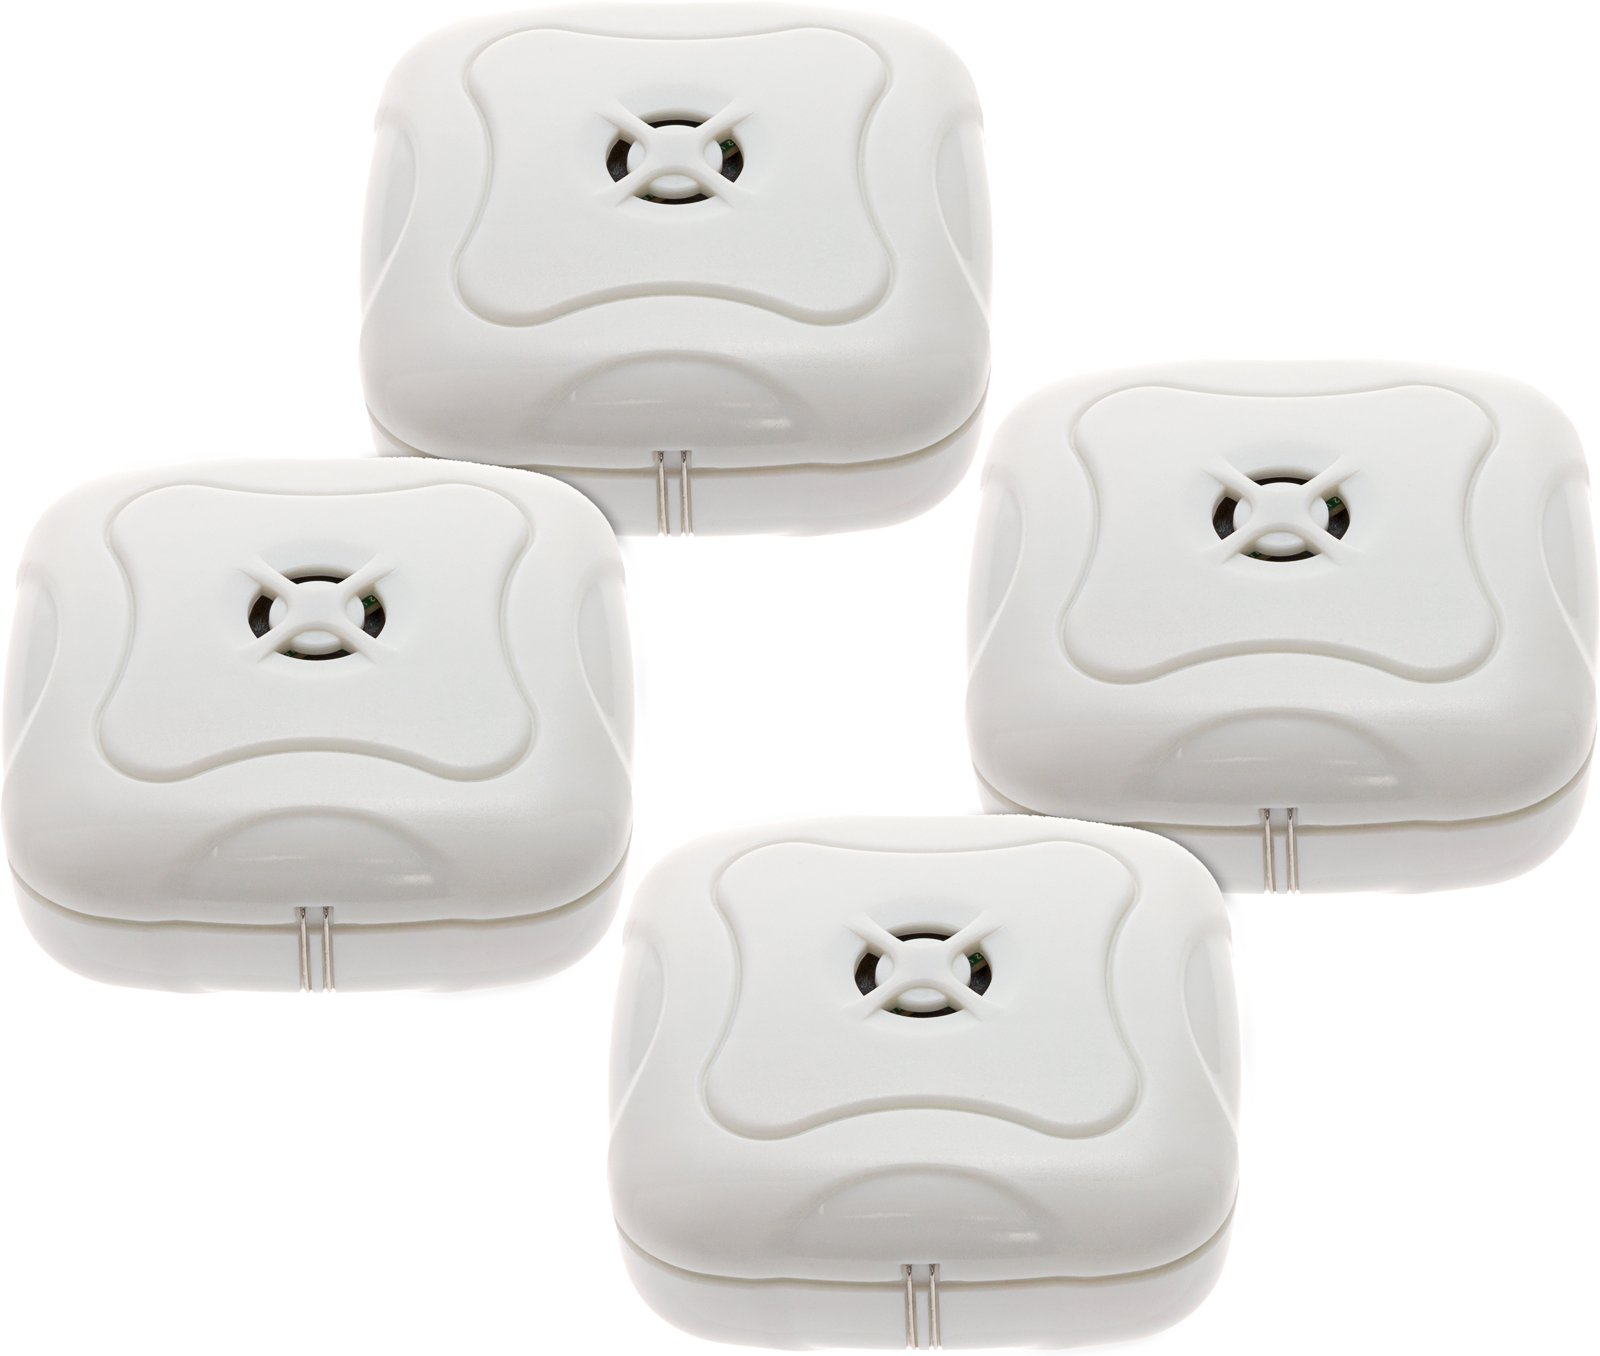 4 Pack Water Leak Detector - 95 Db Flood Detection Alarm Sensor for Bathrooms, Basements, and Kitchens by Mindful Design (White) by Mindful Design